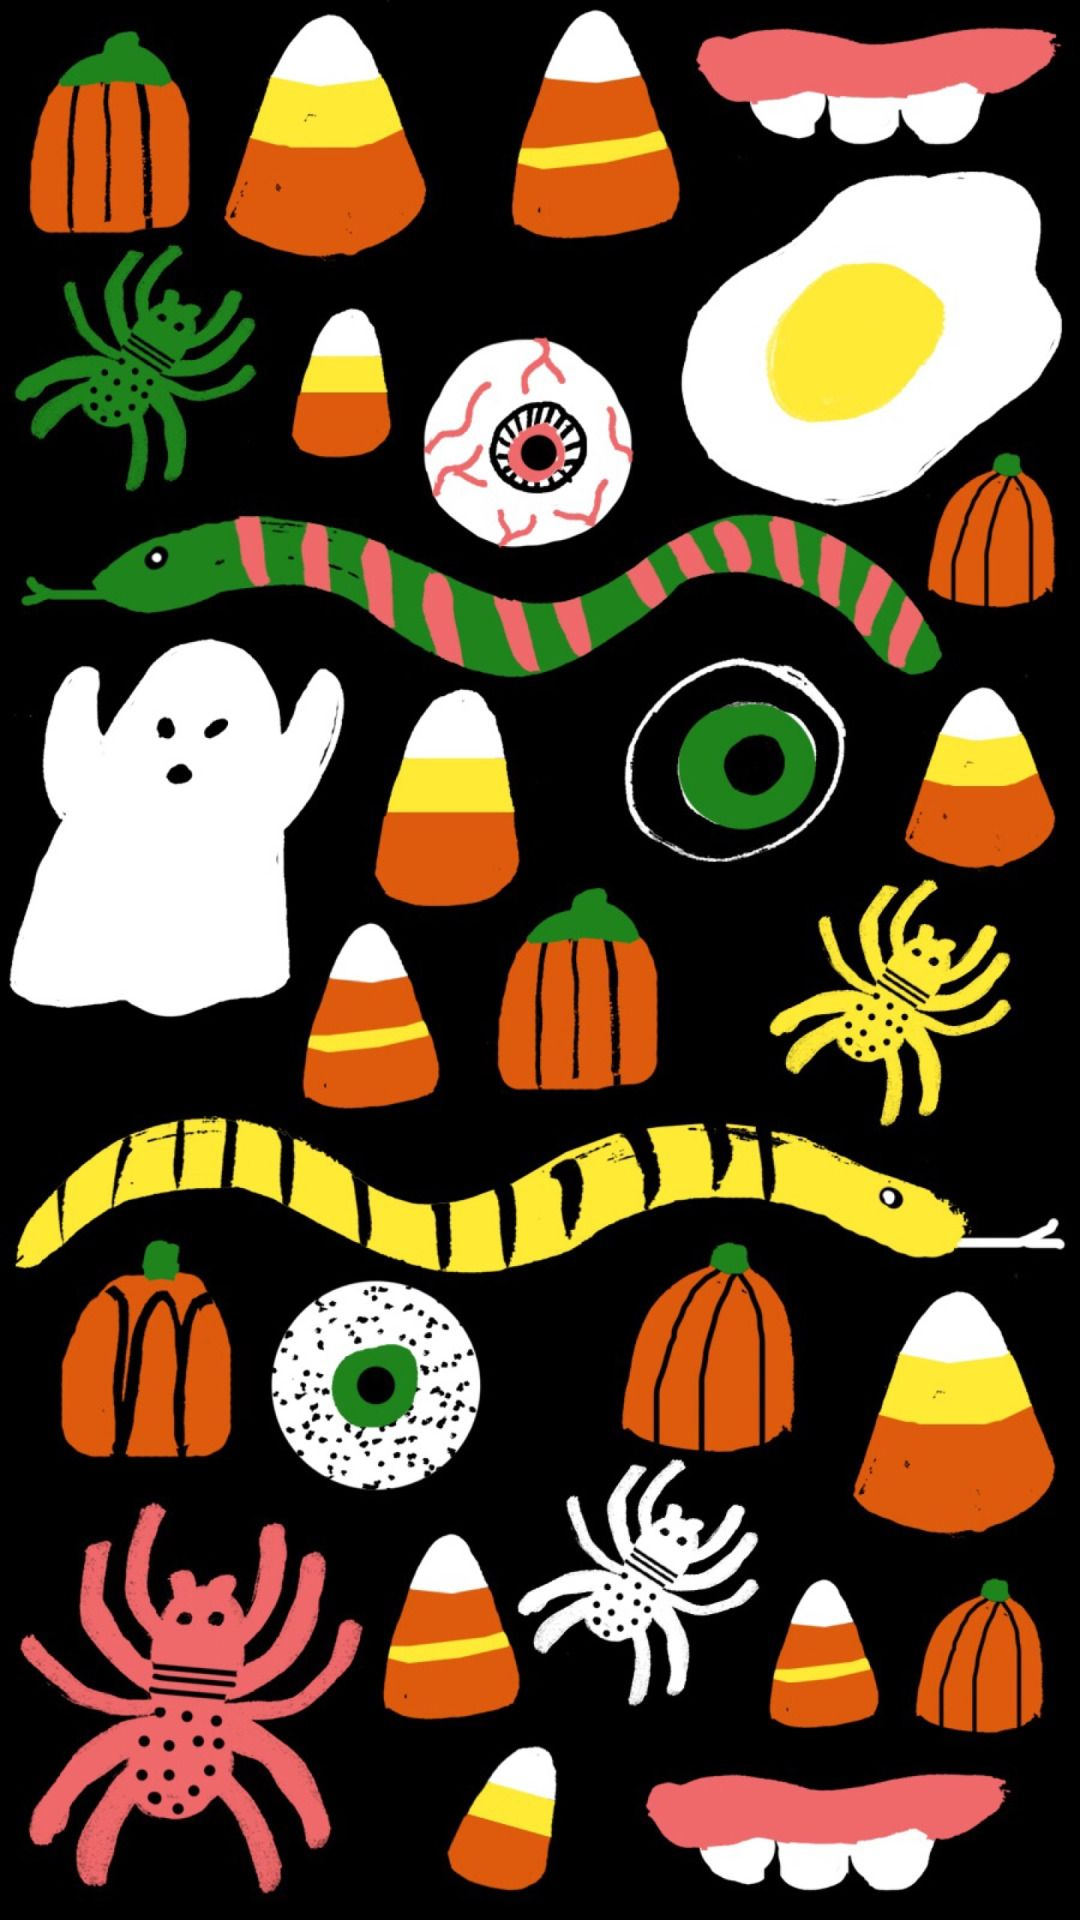 Spooky Pattern Tap to see more creatively spooky